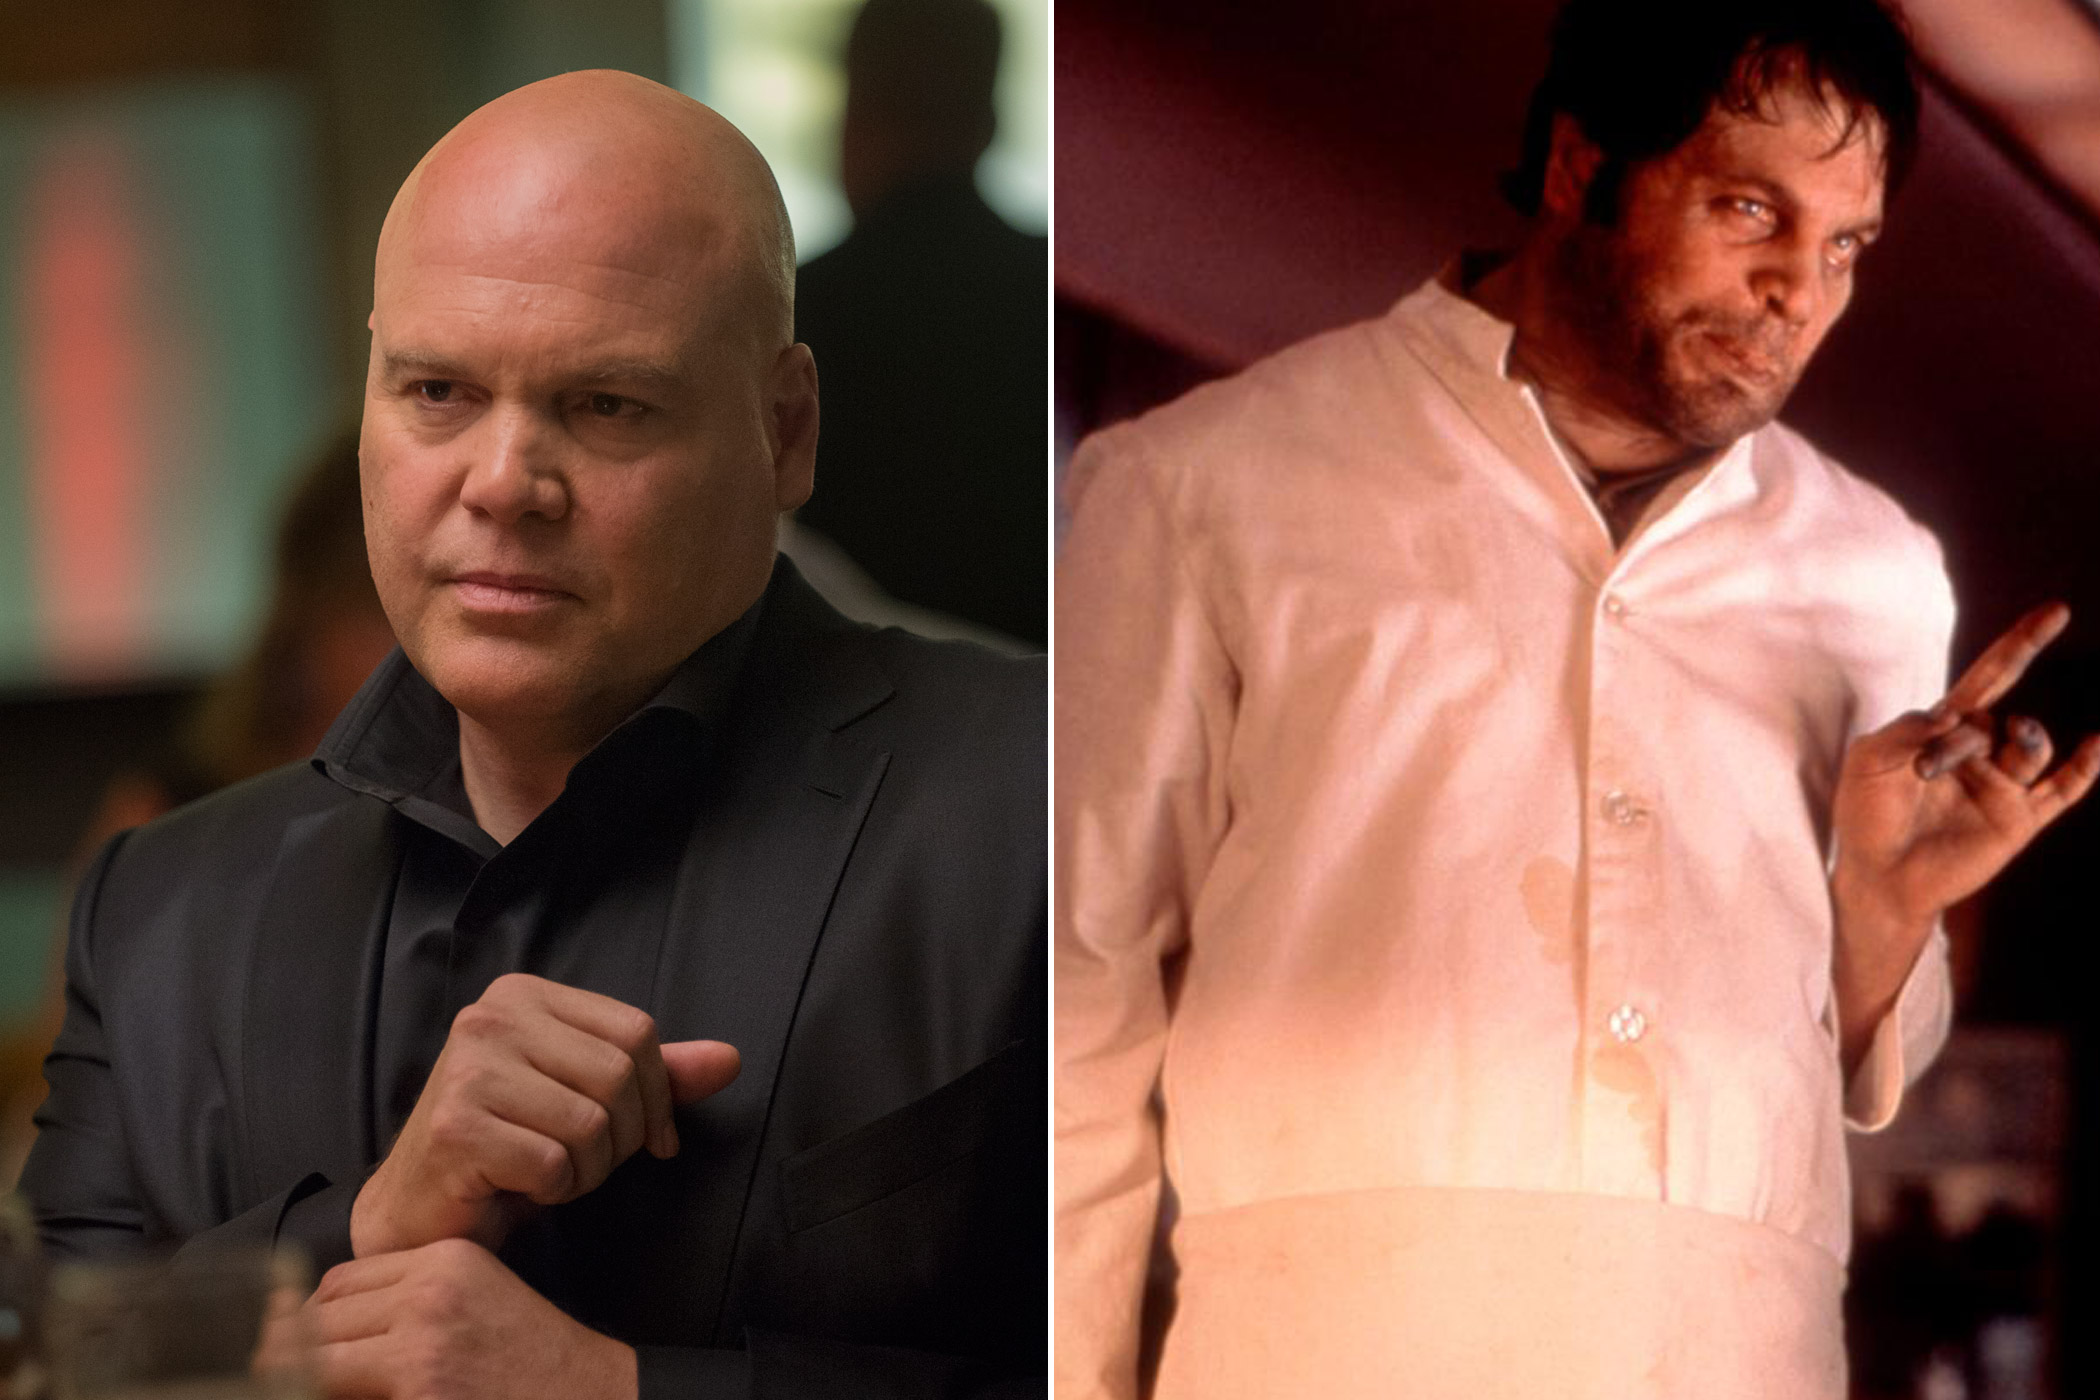 Vincent D'Onofrio as Wilson Fisk in <i>Daredevil</i> and Edgar the bug in <i>Men in Black</i>